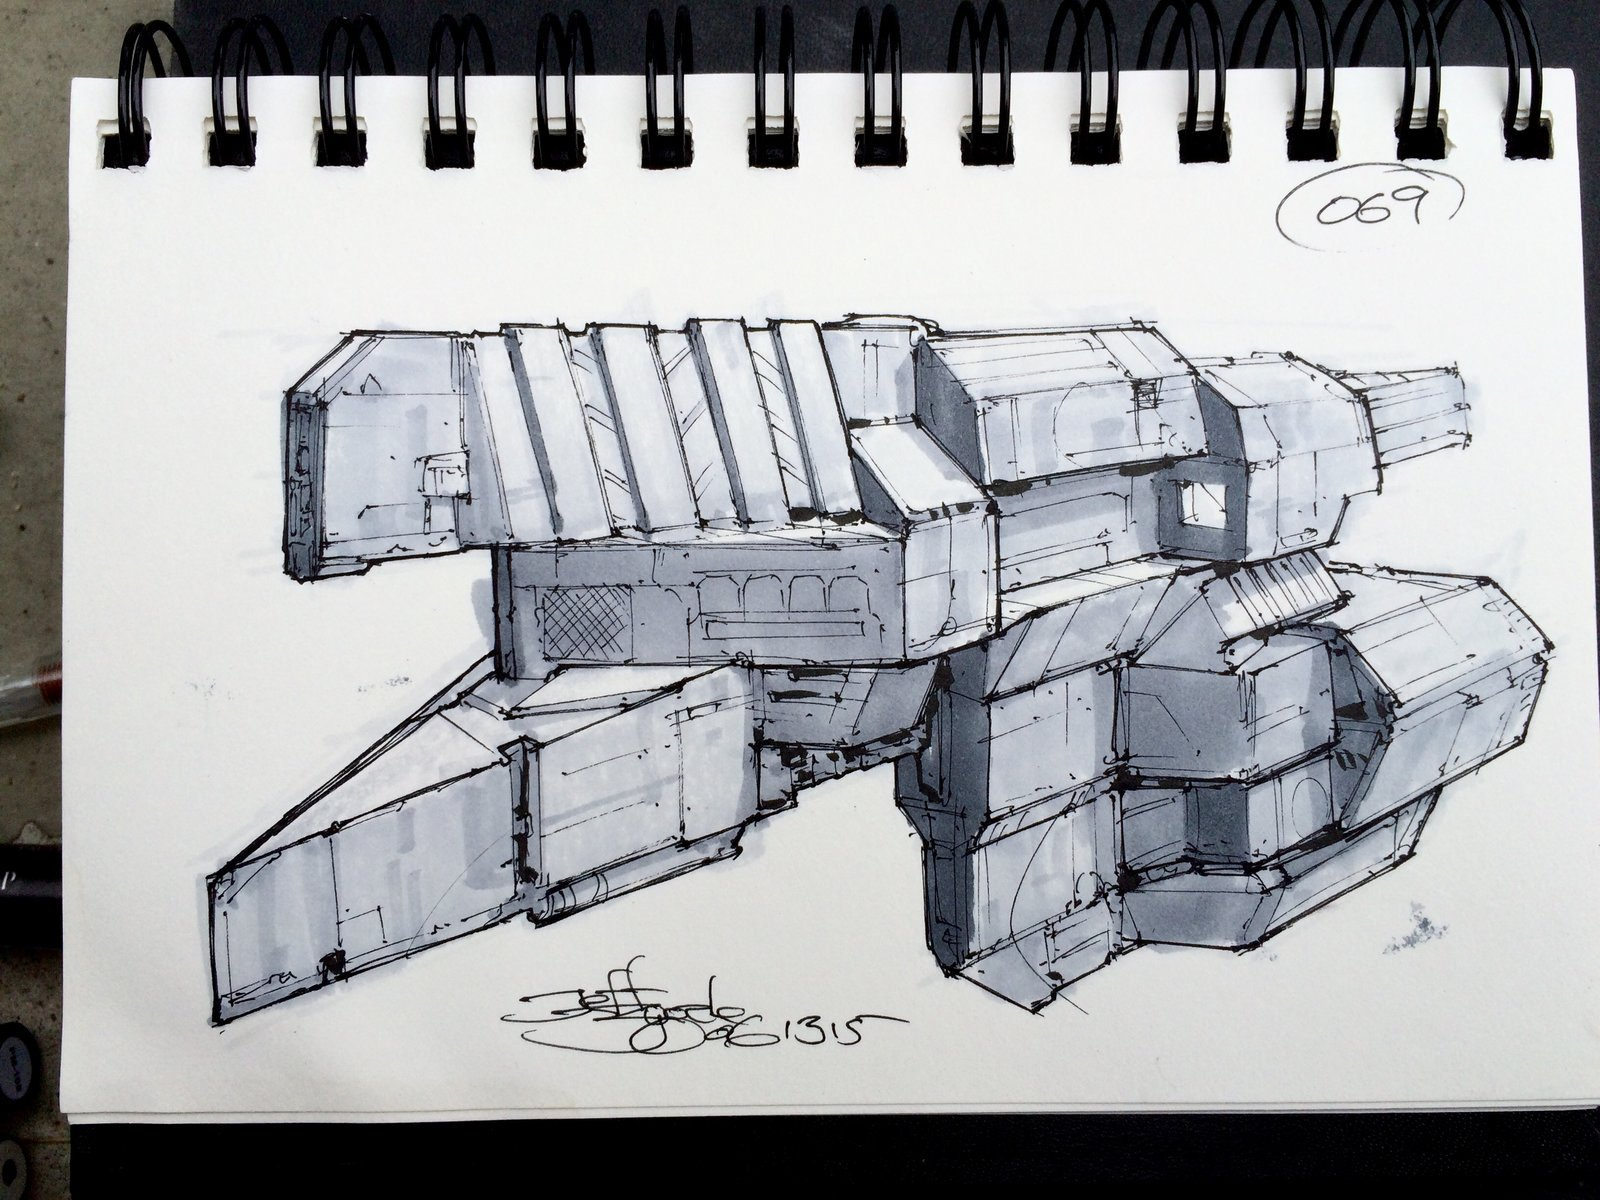 SpaceshipADay 069